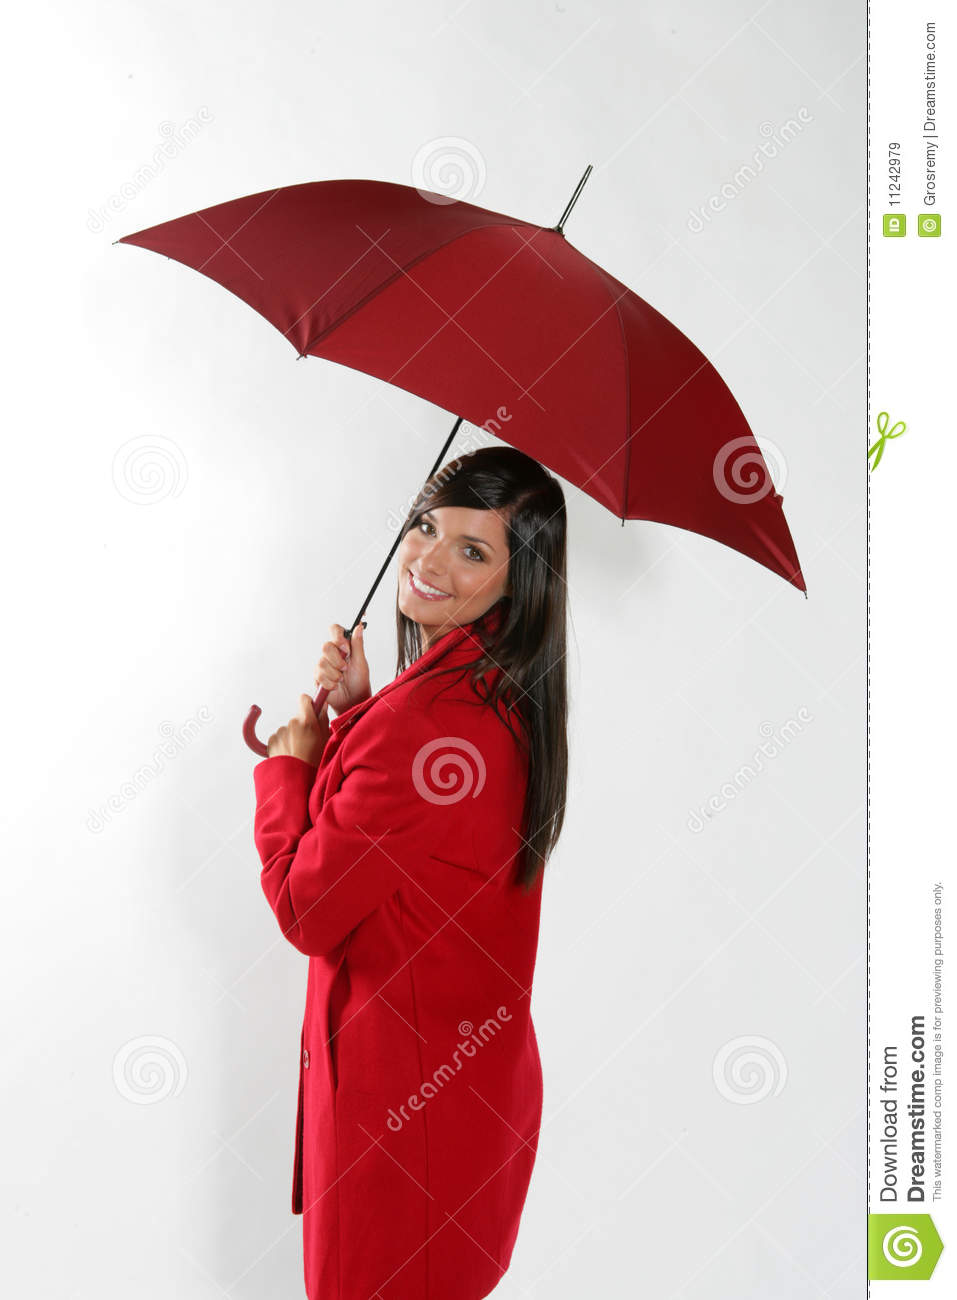 Woman With Red Umbrella Stock Image Image Of Pose Cute 11242979